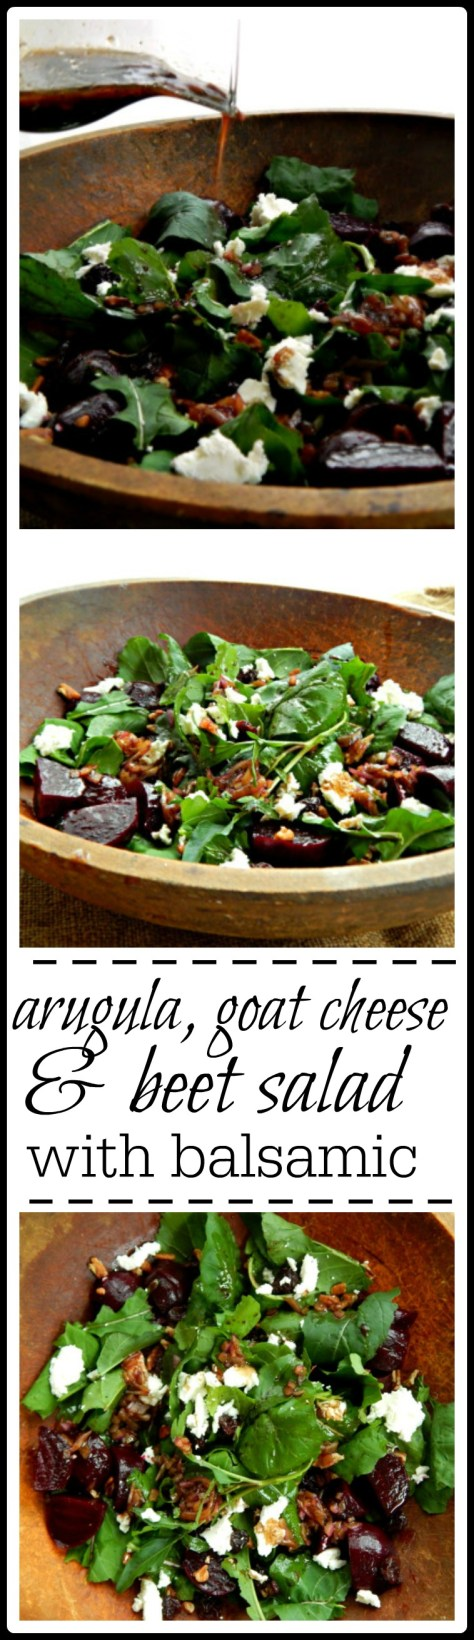 This is one gorgeous salad with the goat cheese & beets & home made balsamic